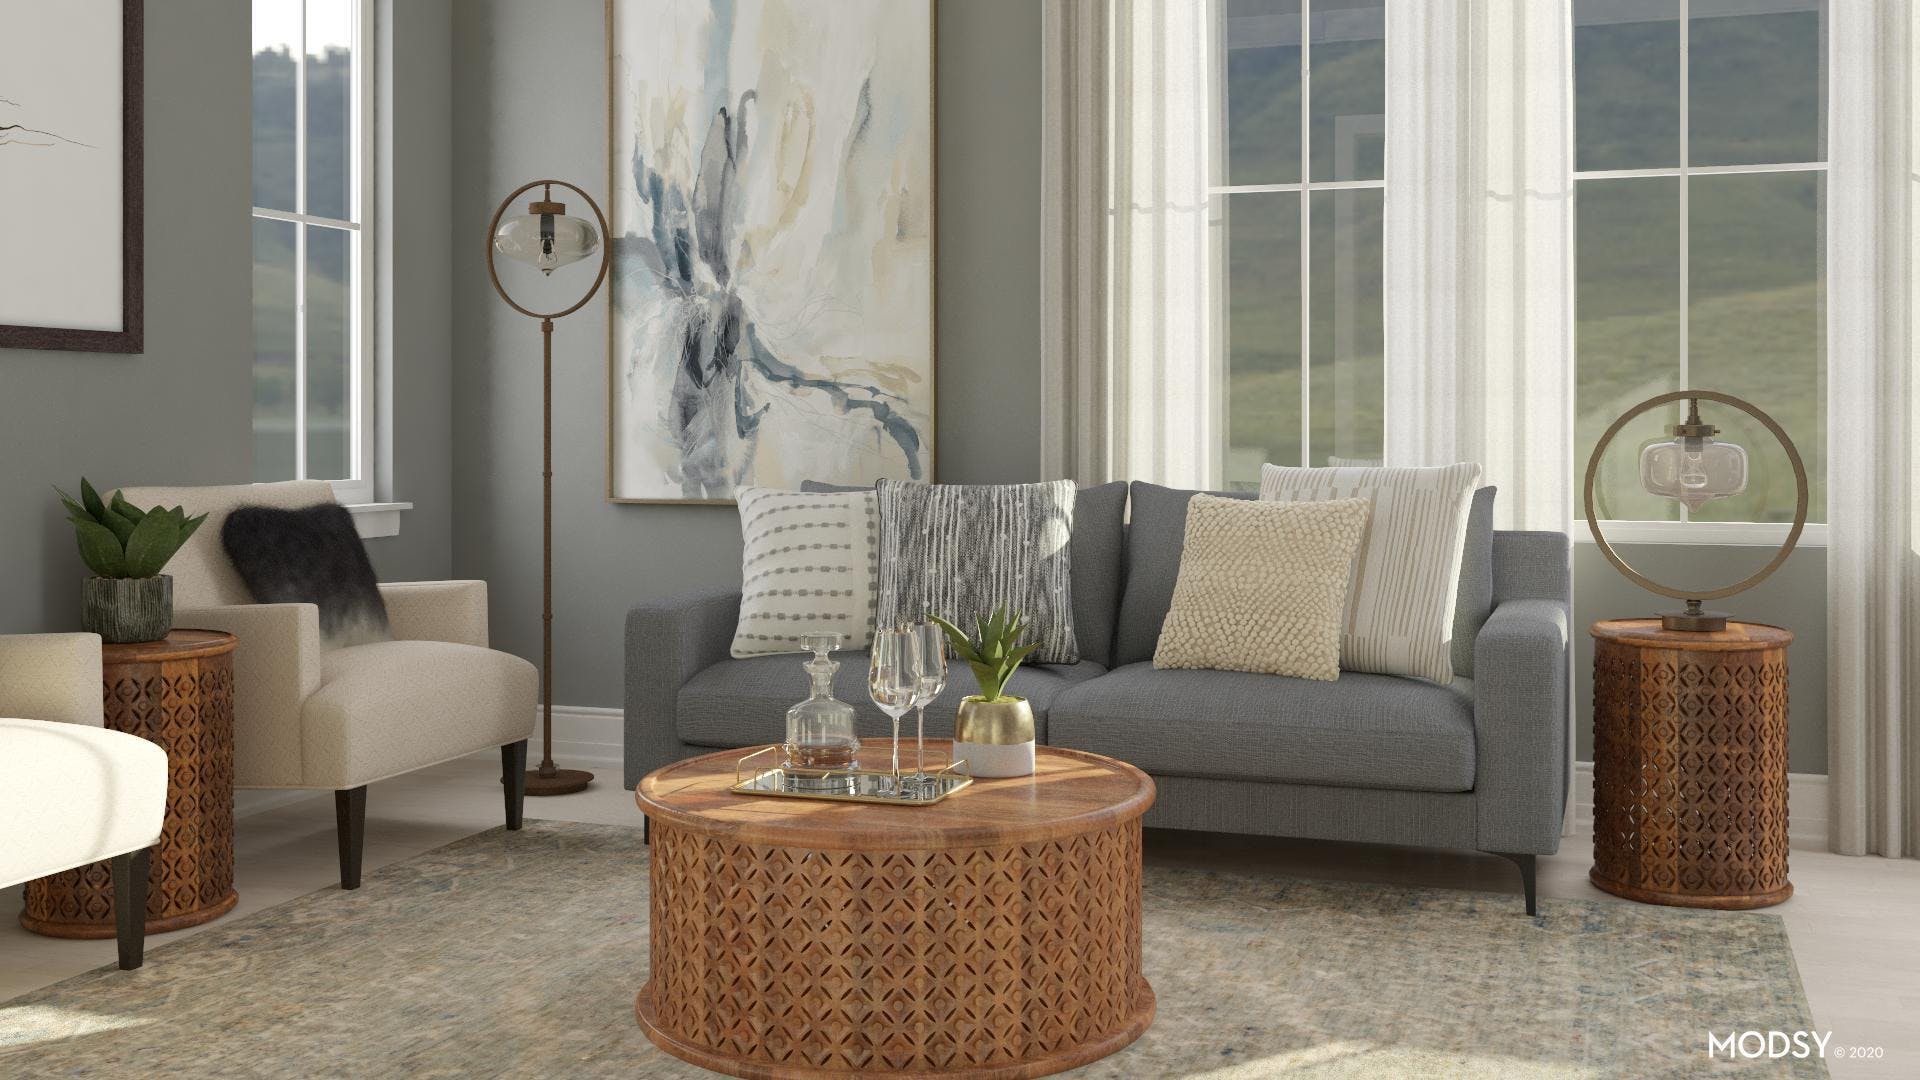 Classic + Contemporary = Transitional